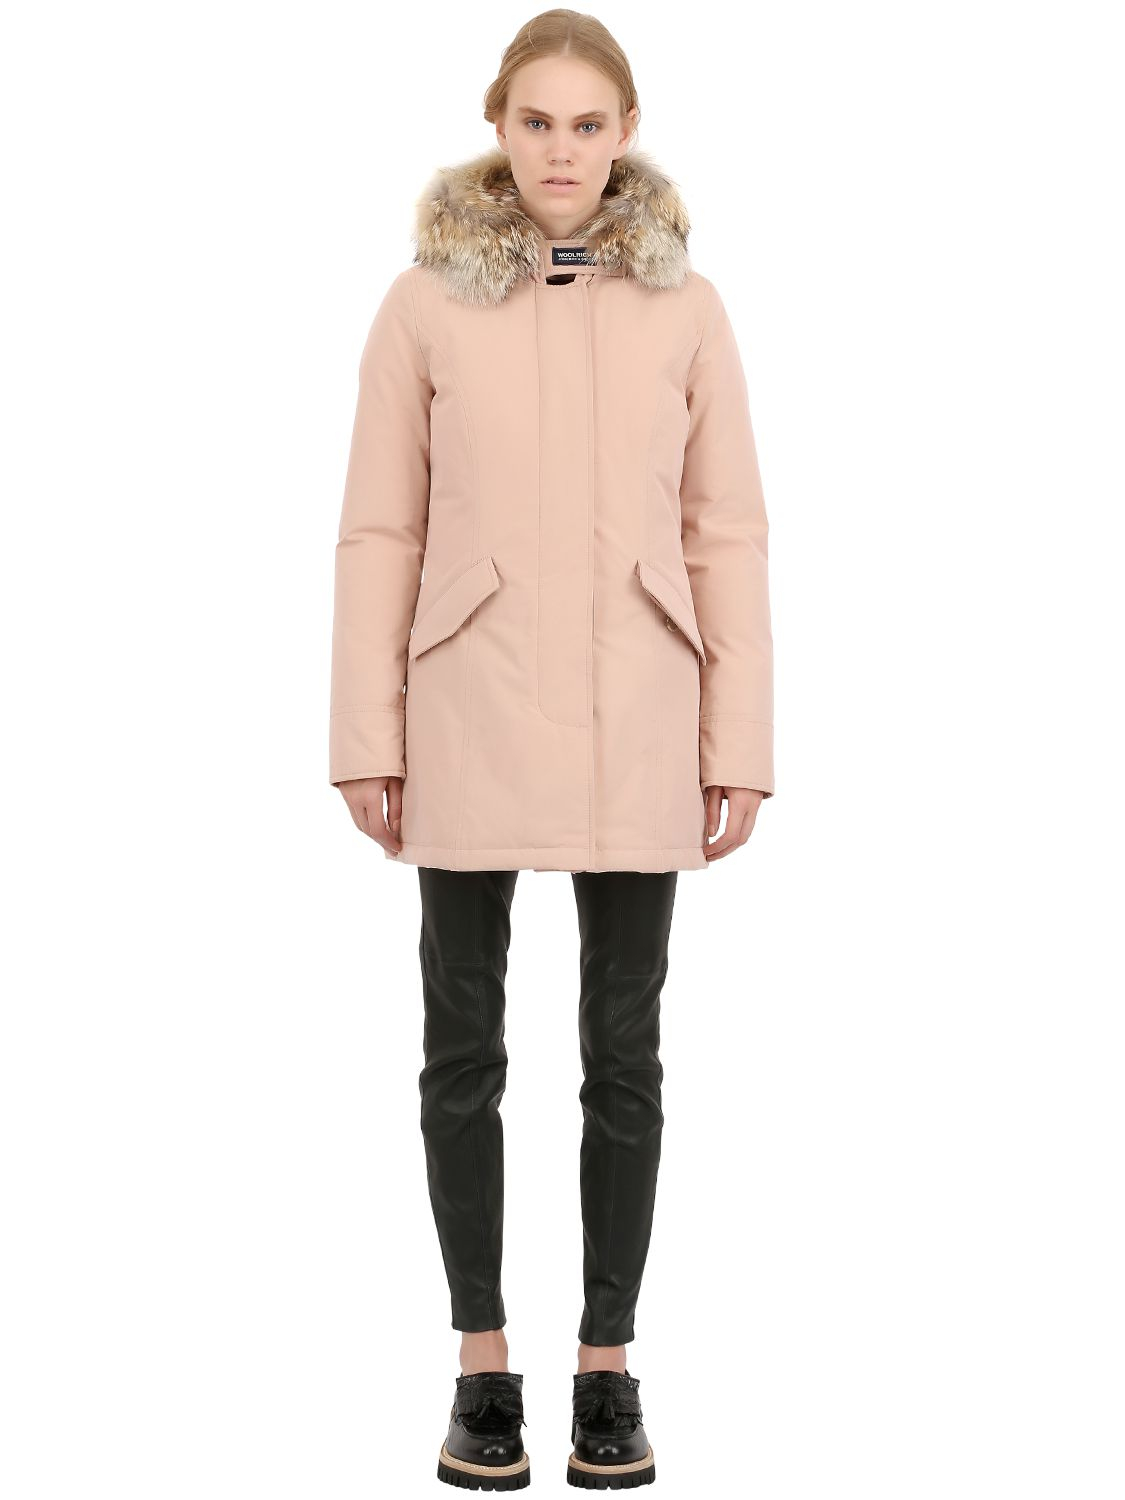 cheaper 4c857 2be44 Woolrich Byrd Cloth Woman'S Arctic Parka in Pink - Lyst